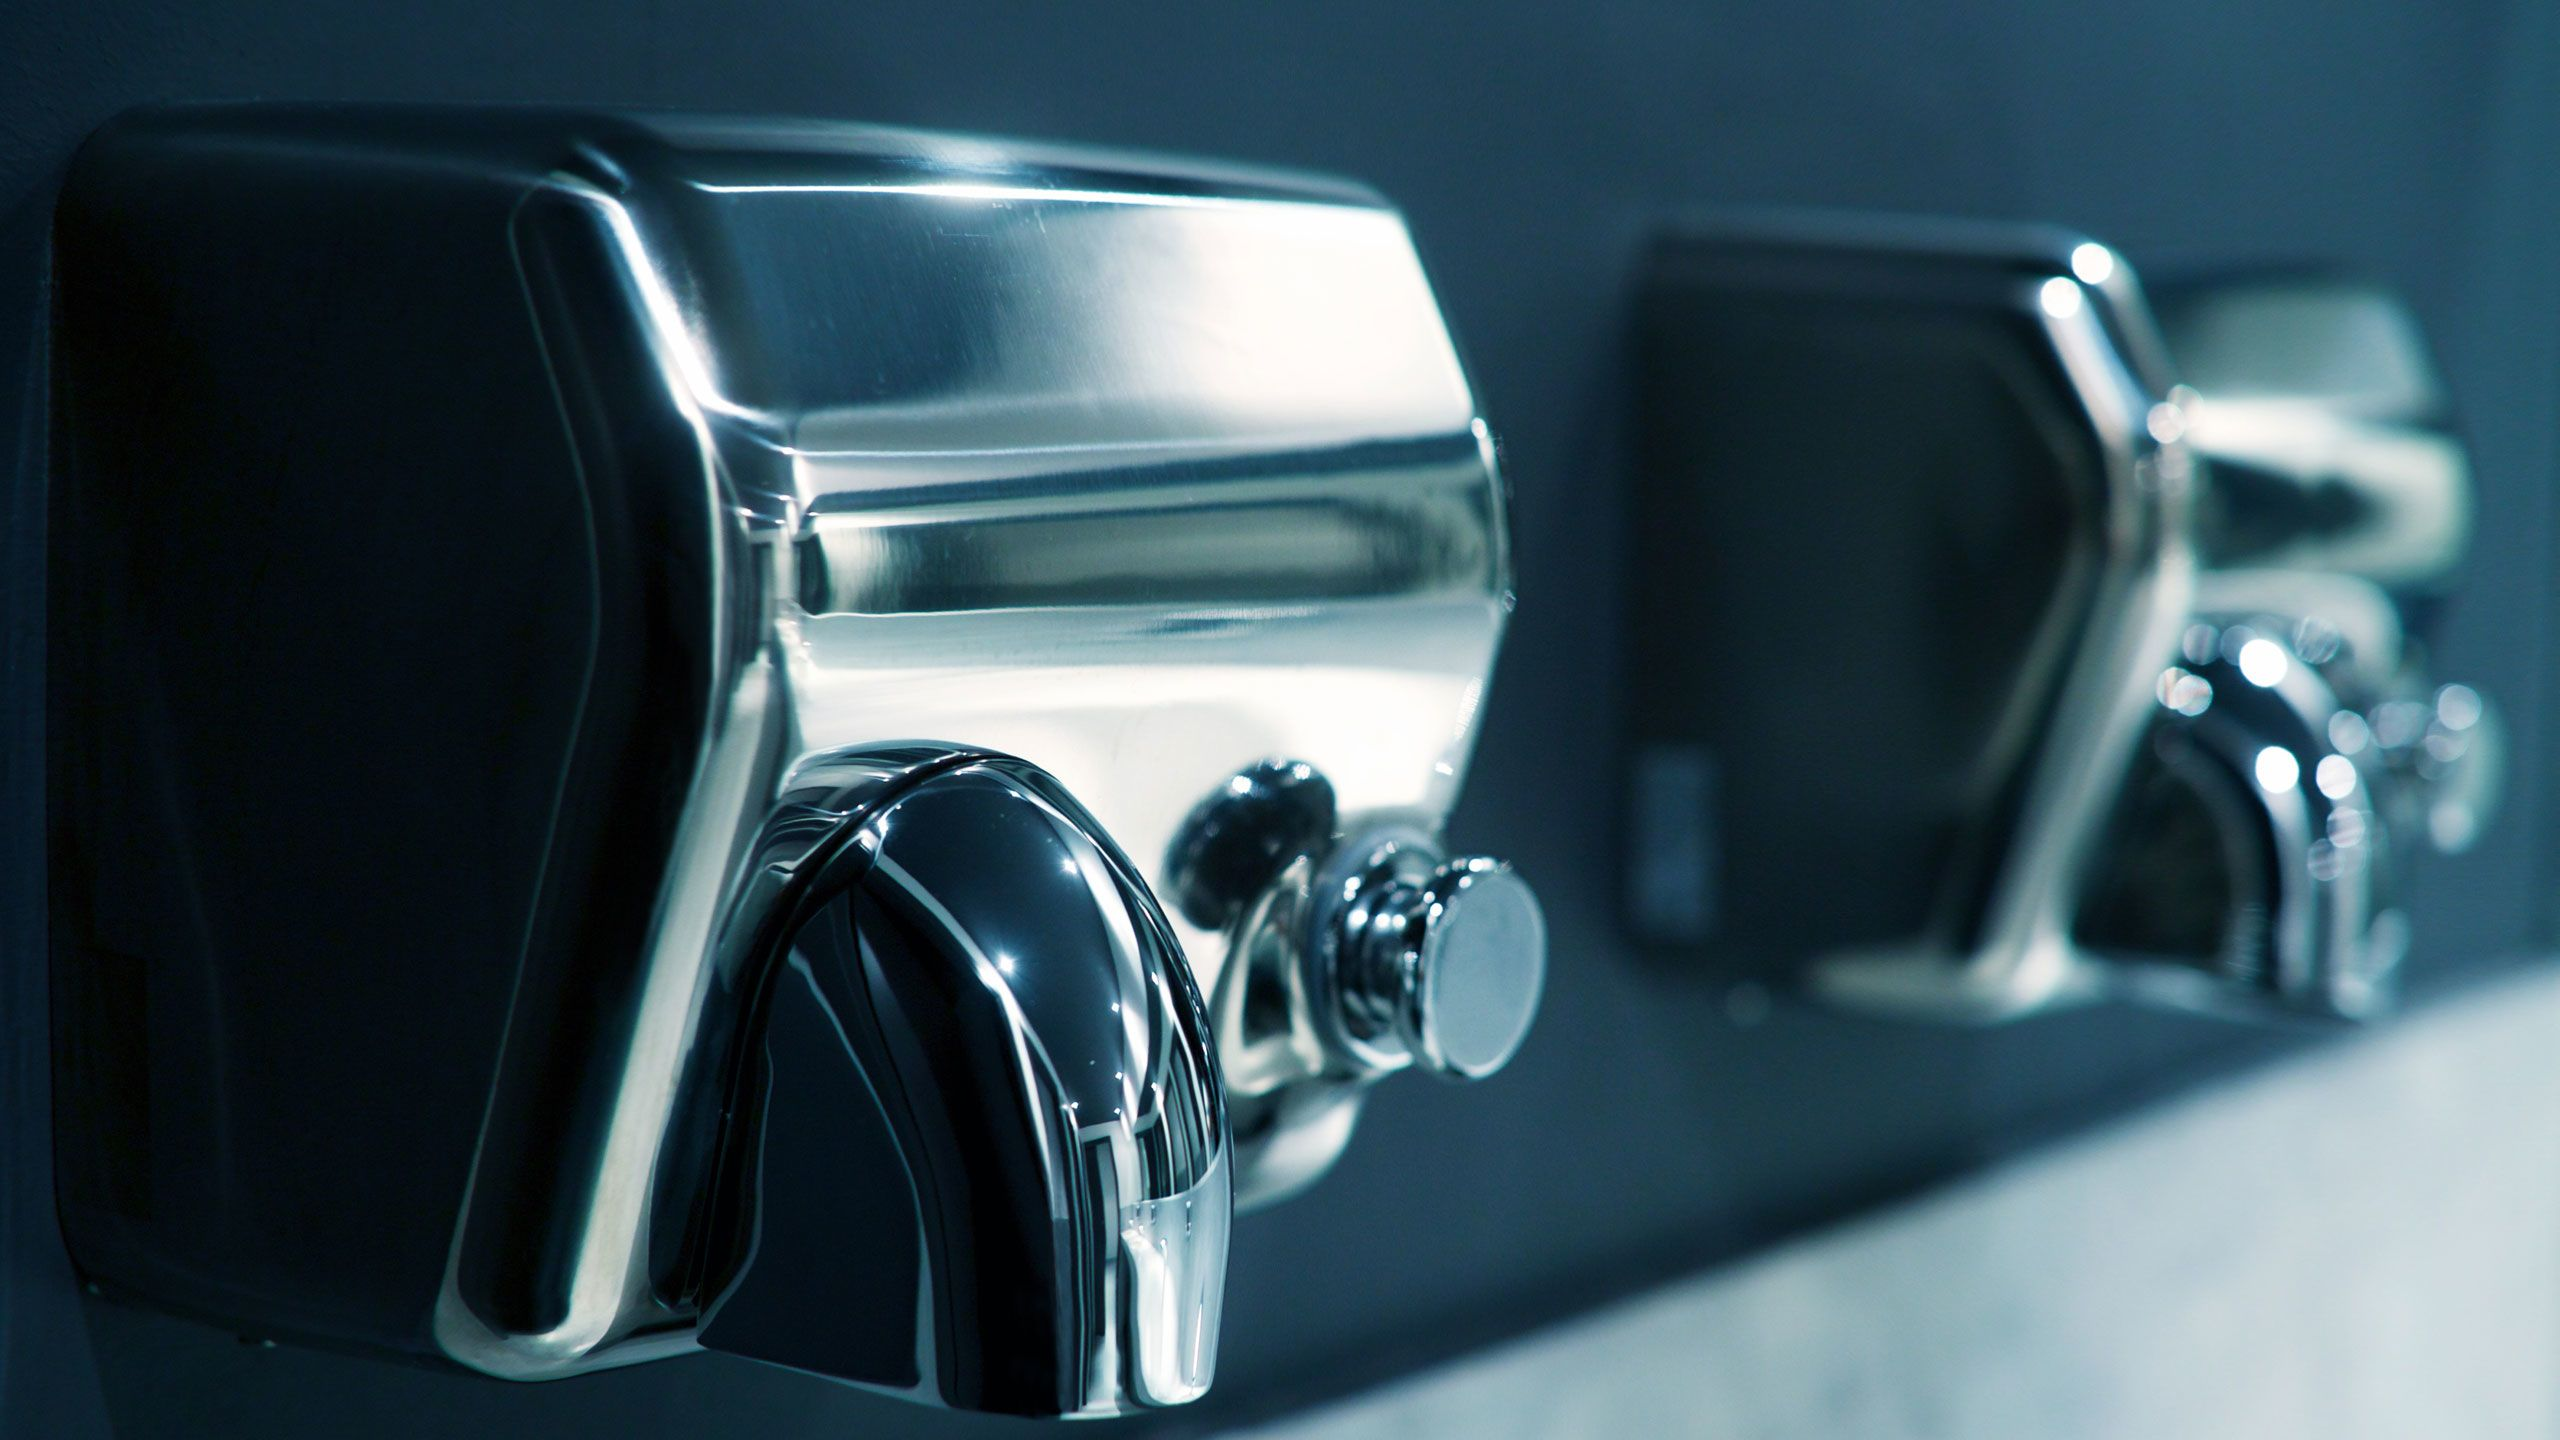 News: Hand Dryers Linked to Bacteria Spread—Plus 10 More Germ Hotspots